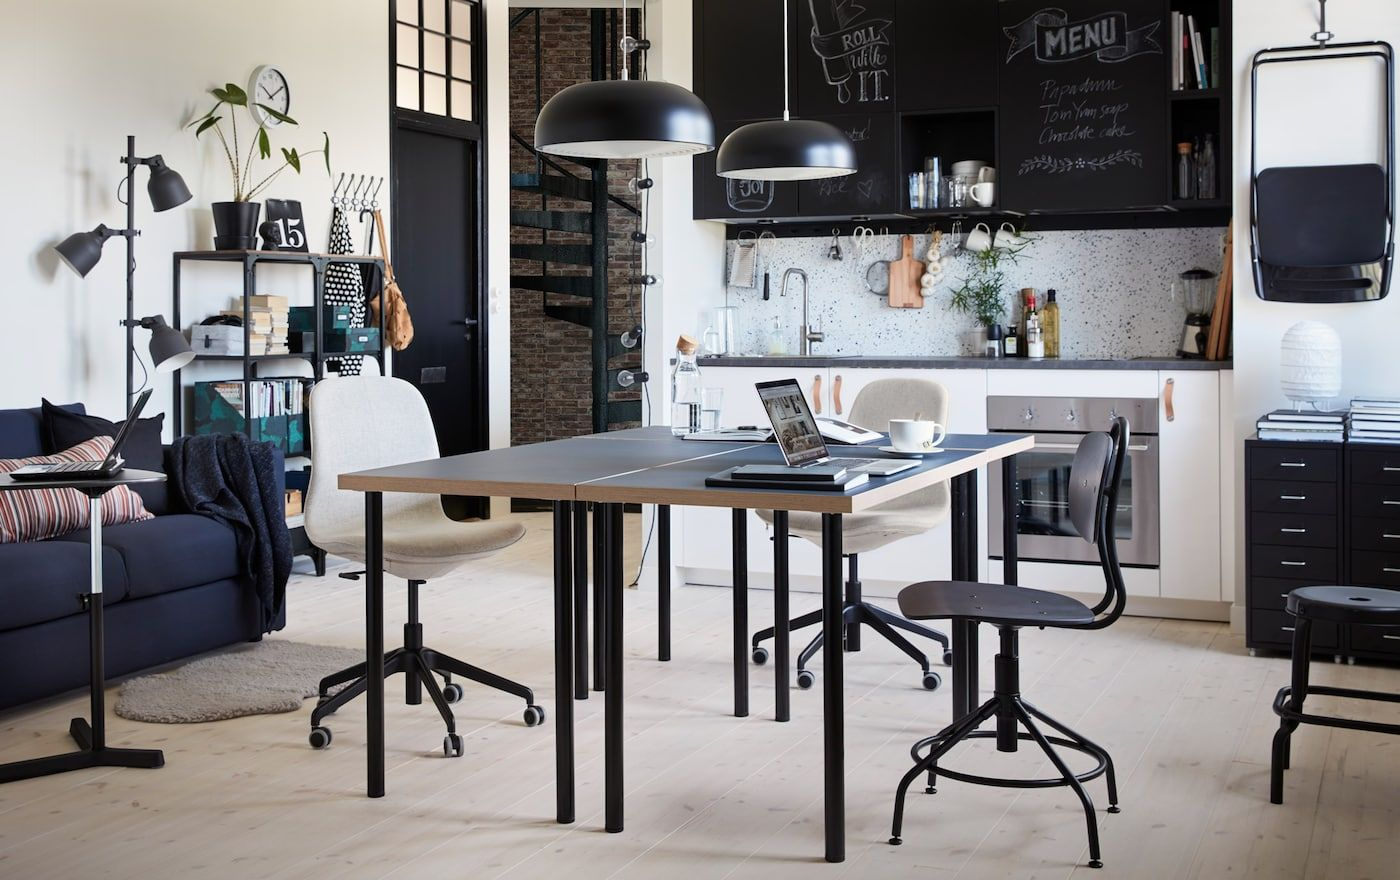 First the project, then the pizzas. Craft tables with